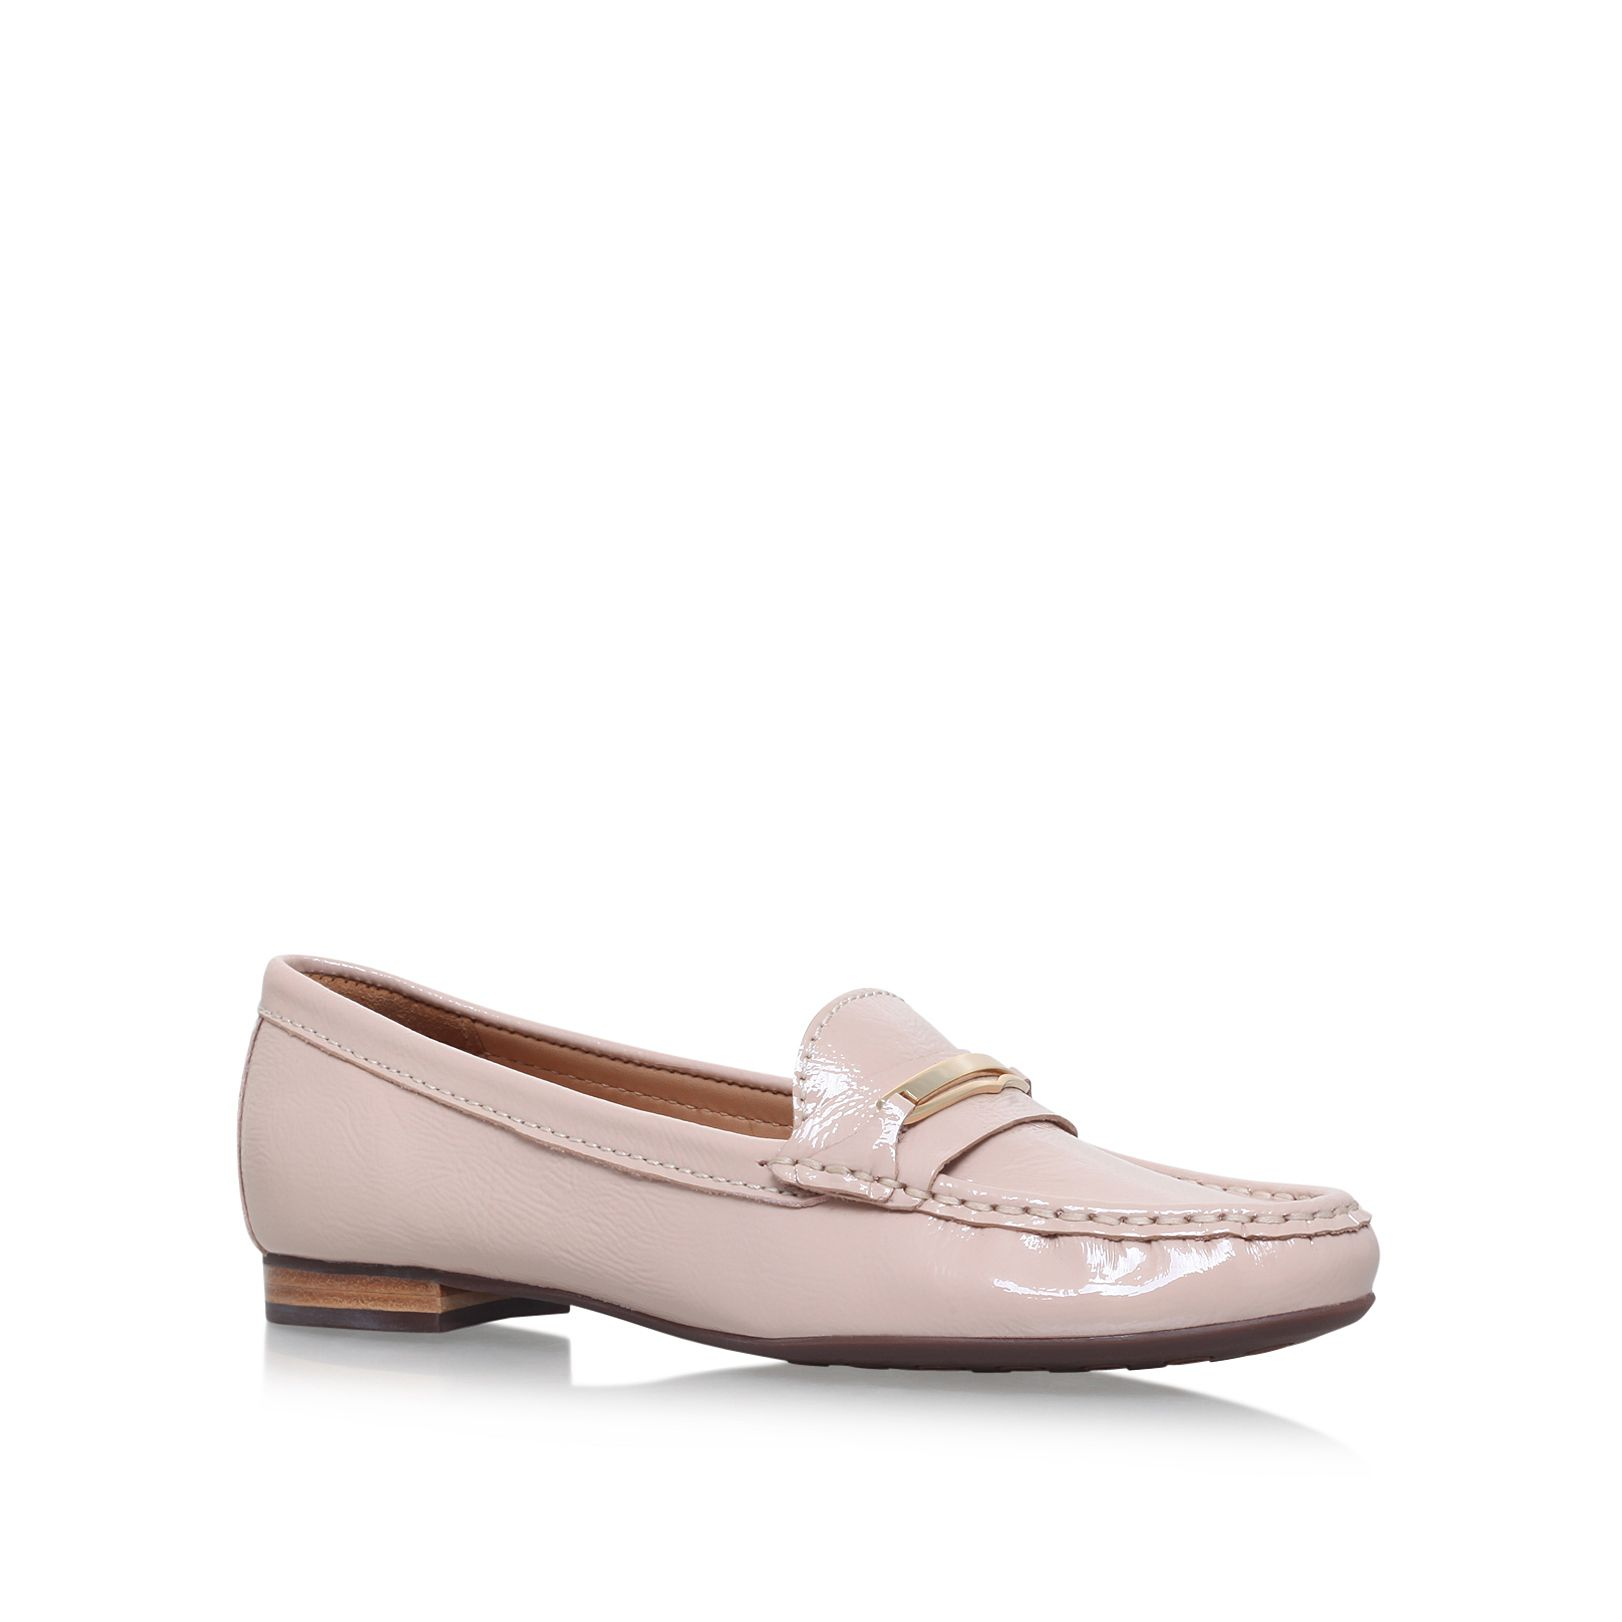 Carvela Comfort Charlotte slip on loafers, Nude